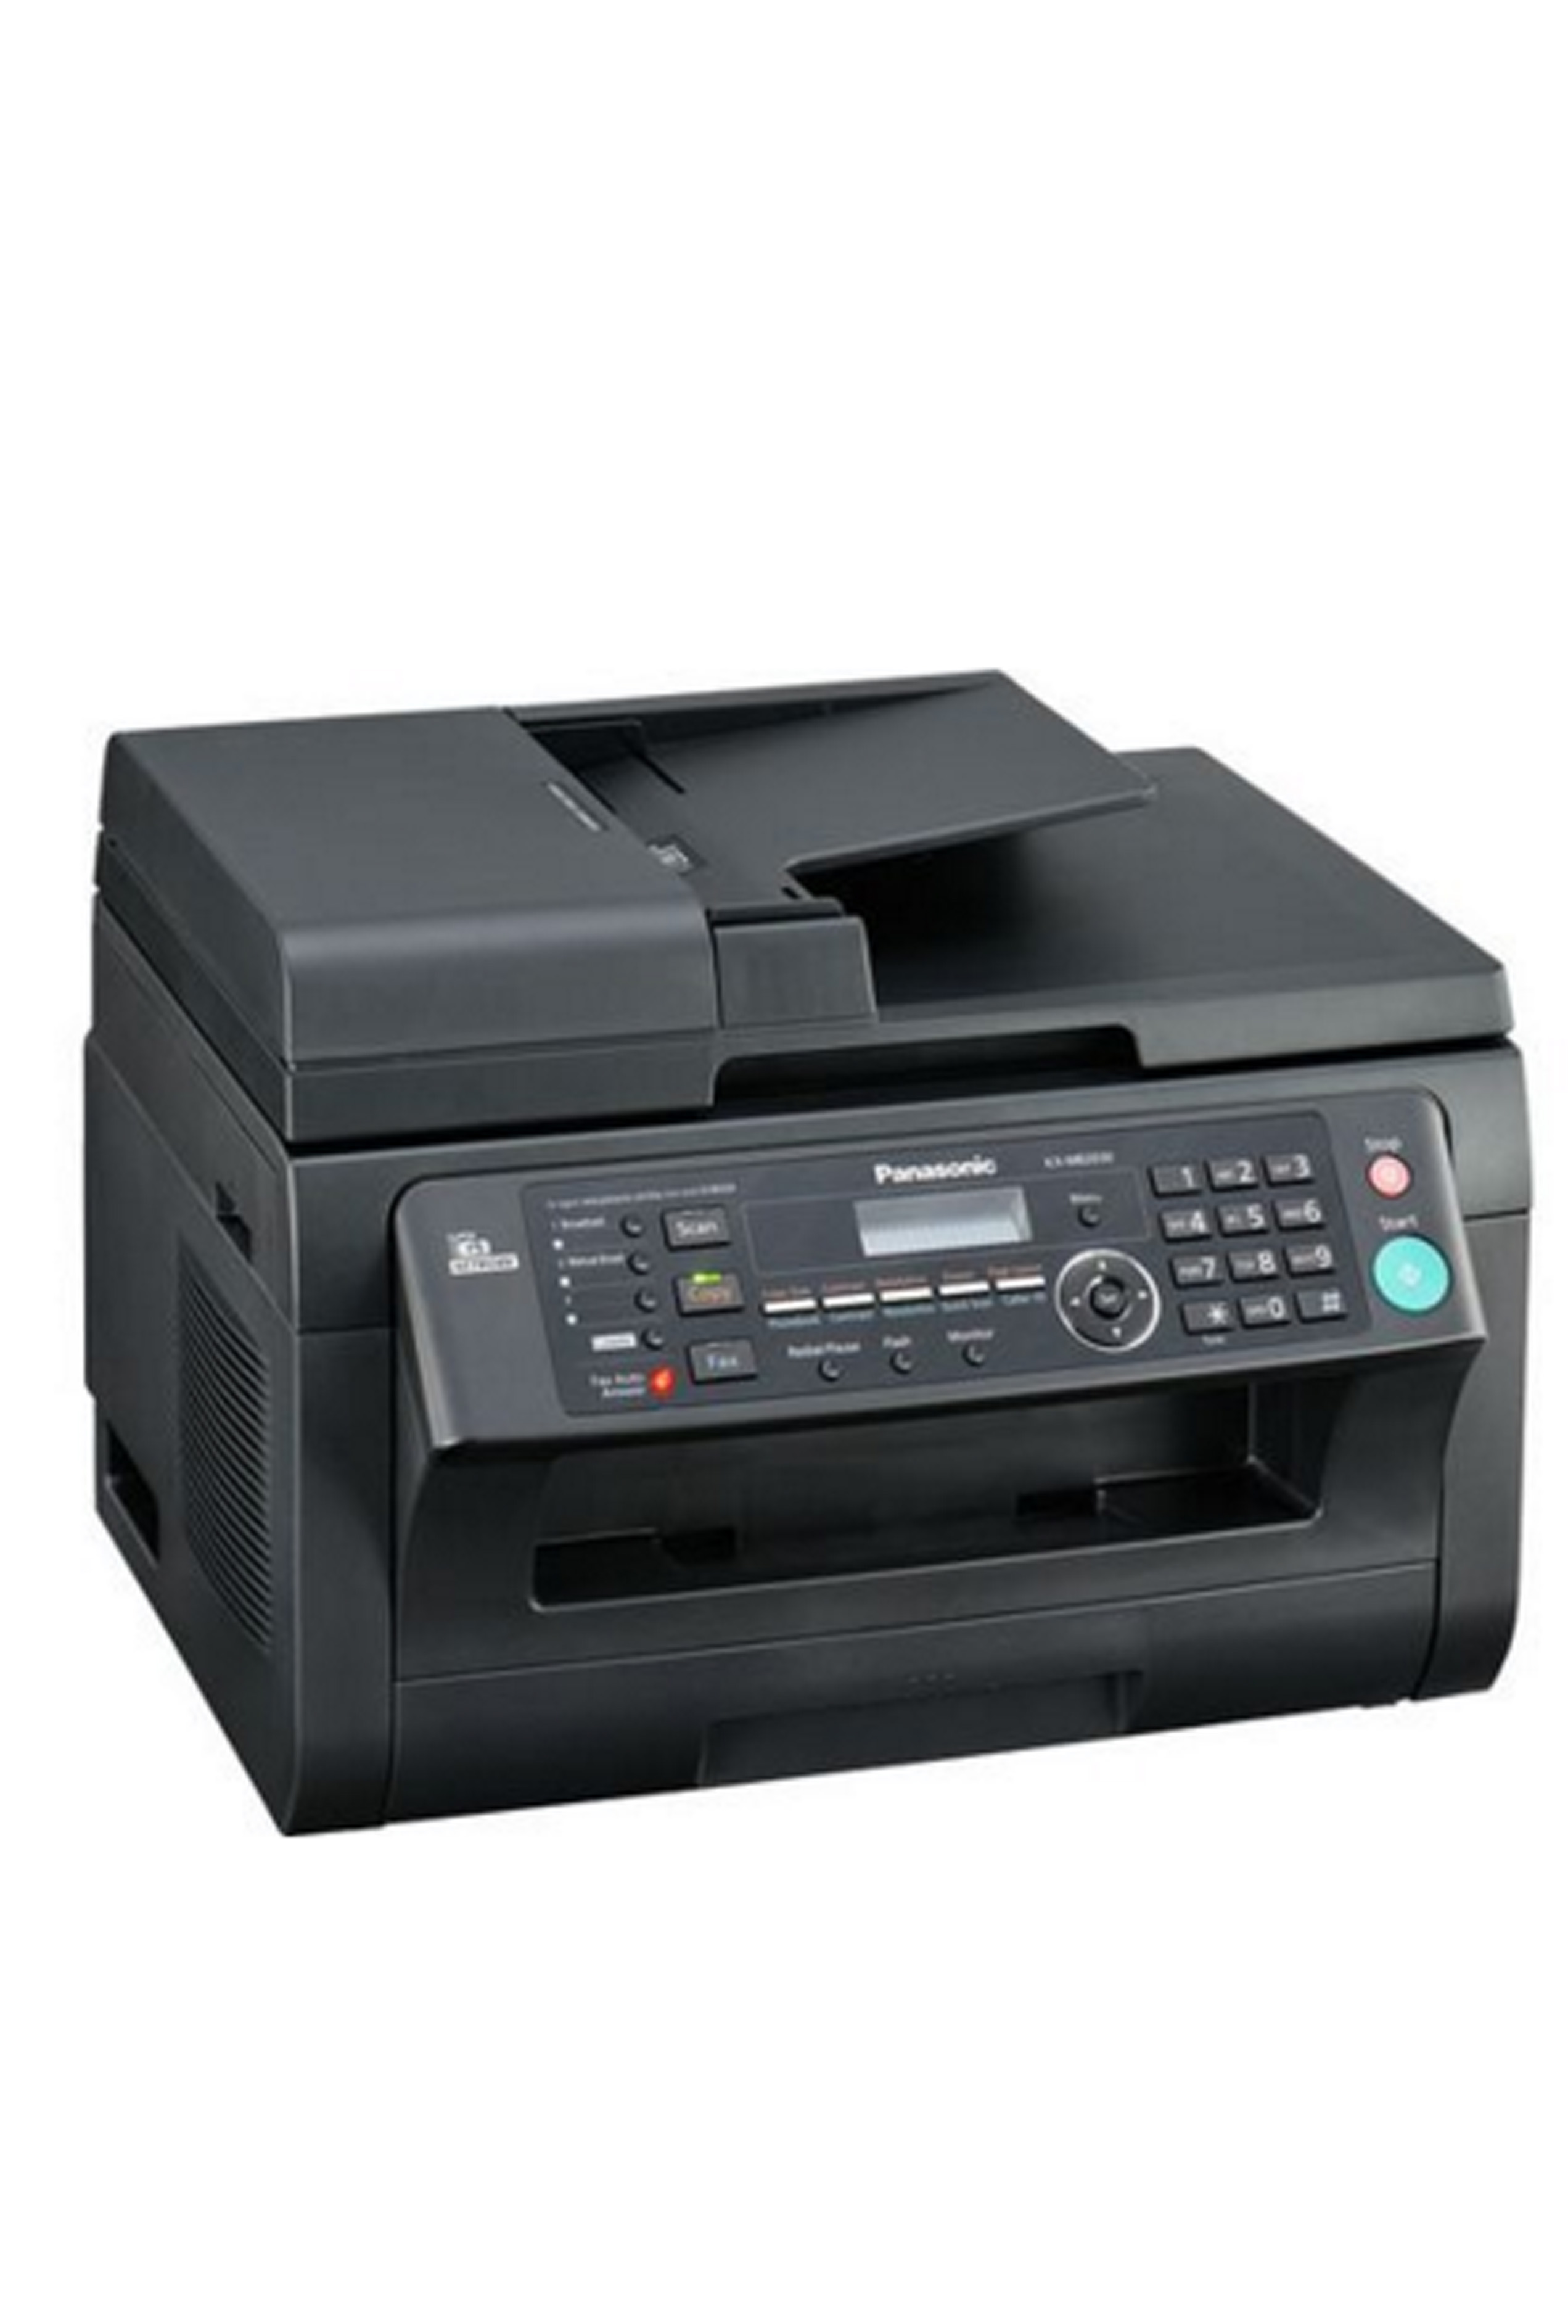 Panasonic KX-MB2030 Desktop,...